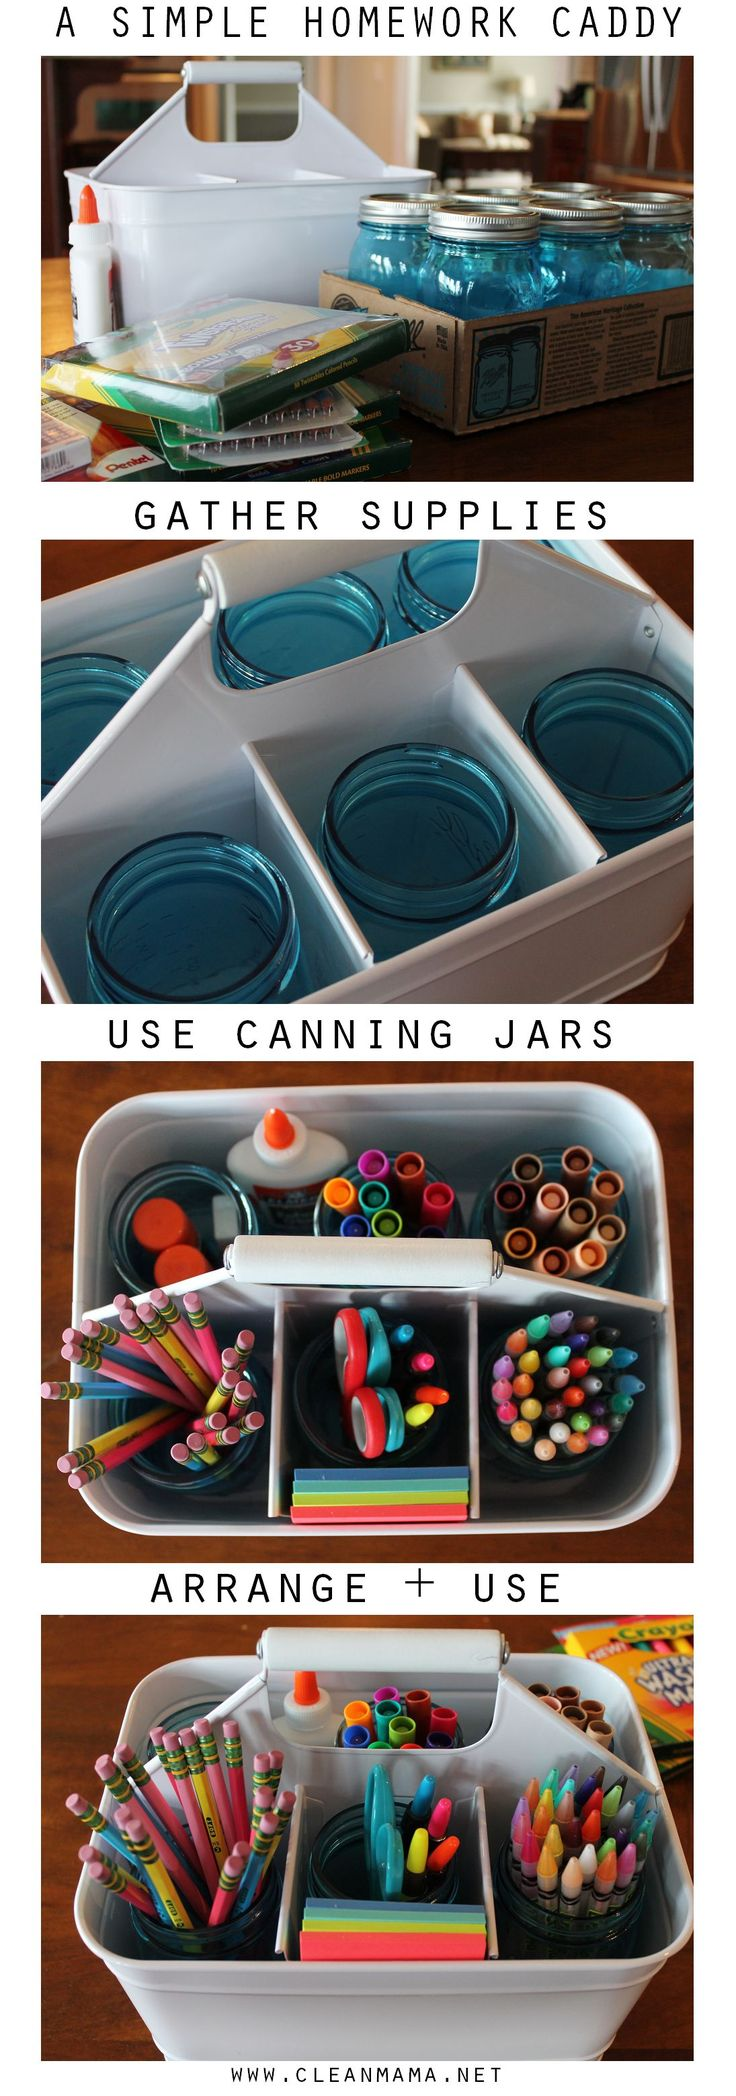 A Simple Homework Caddy